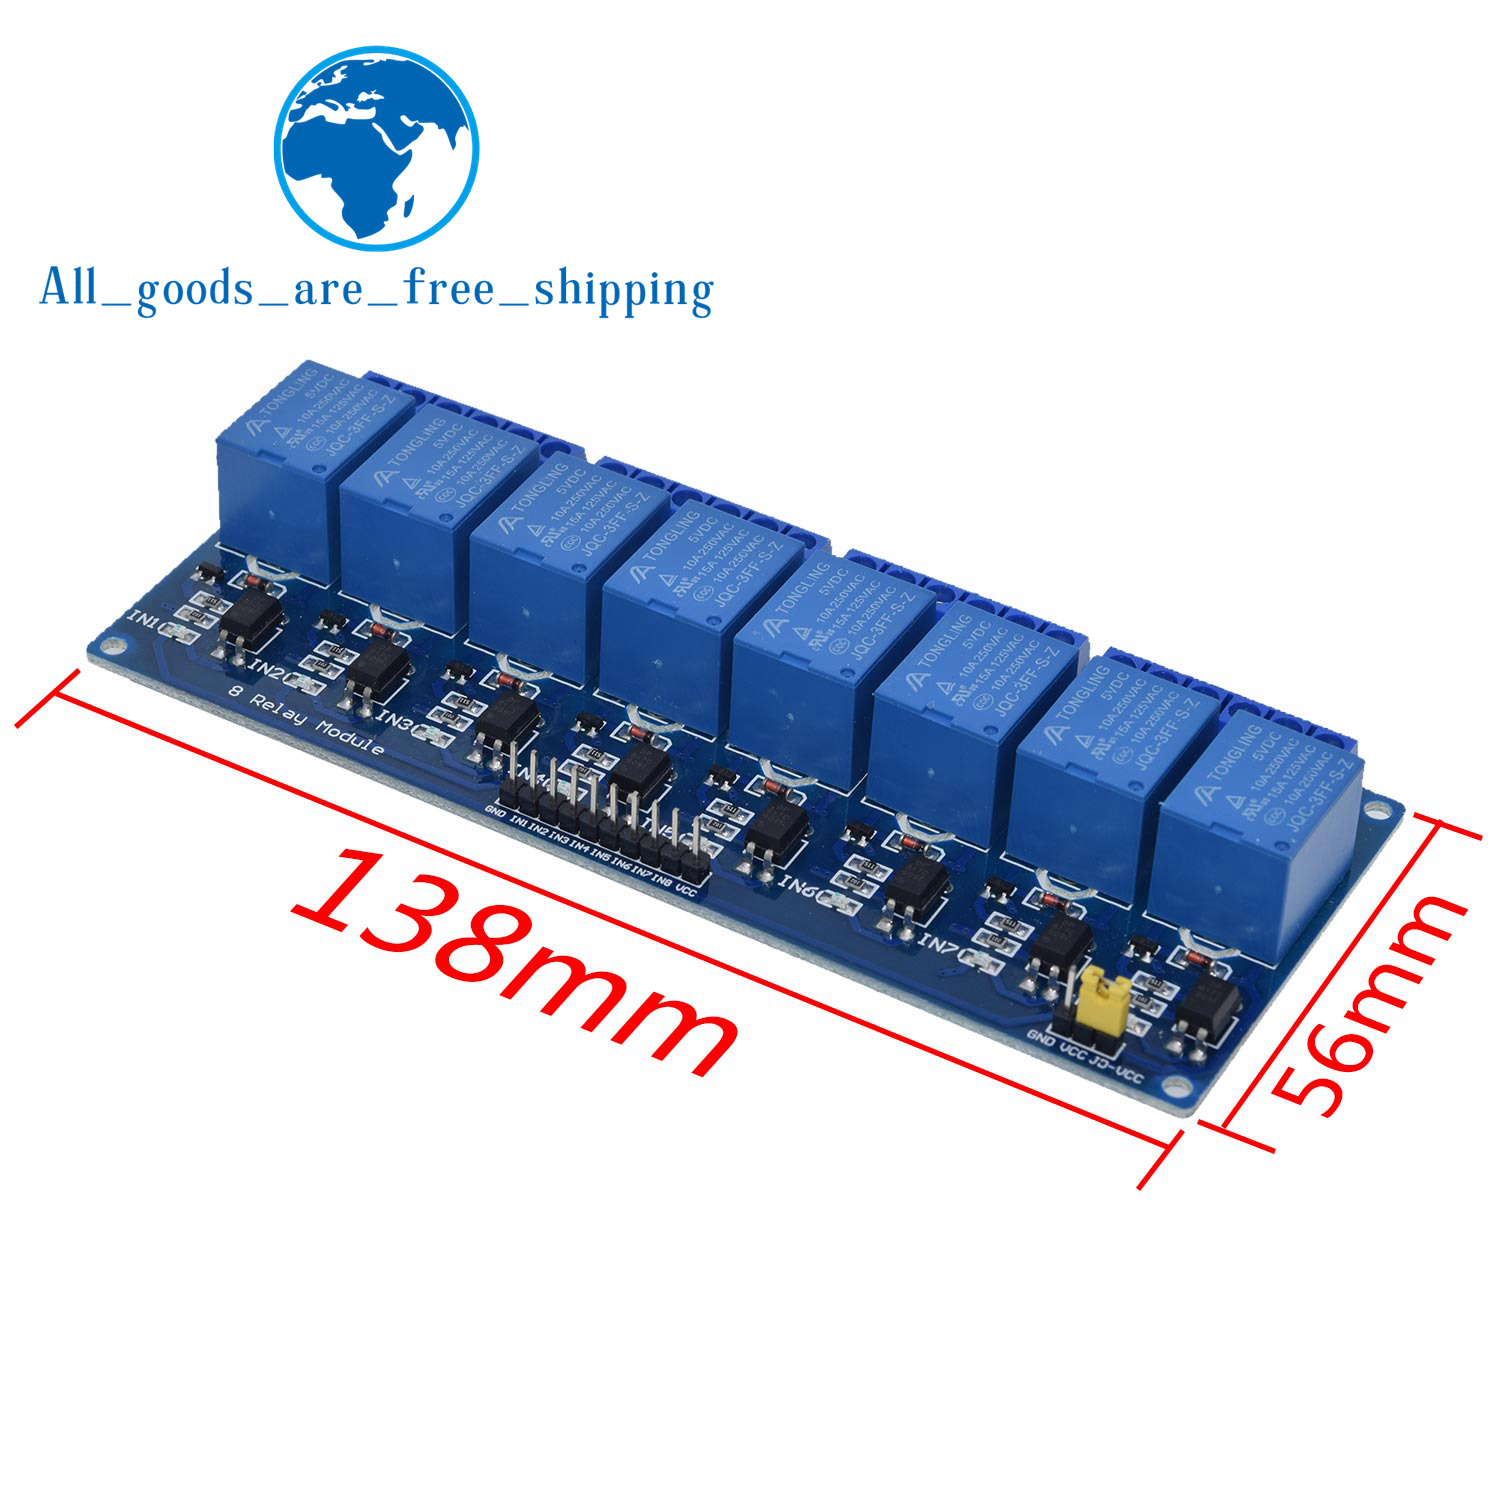 TZT 1pcs 5v 12v 1 2 4 6 8 channel relay module with optocoupler. Relay Output 1 2 4 6 8 way relay module for arduino In stock 10